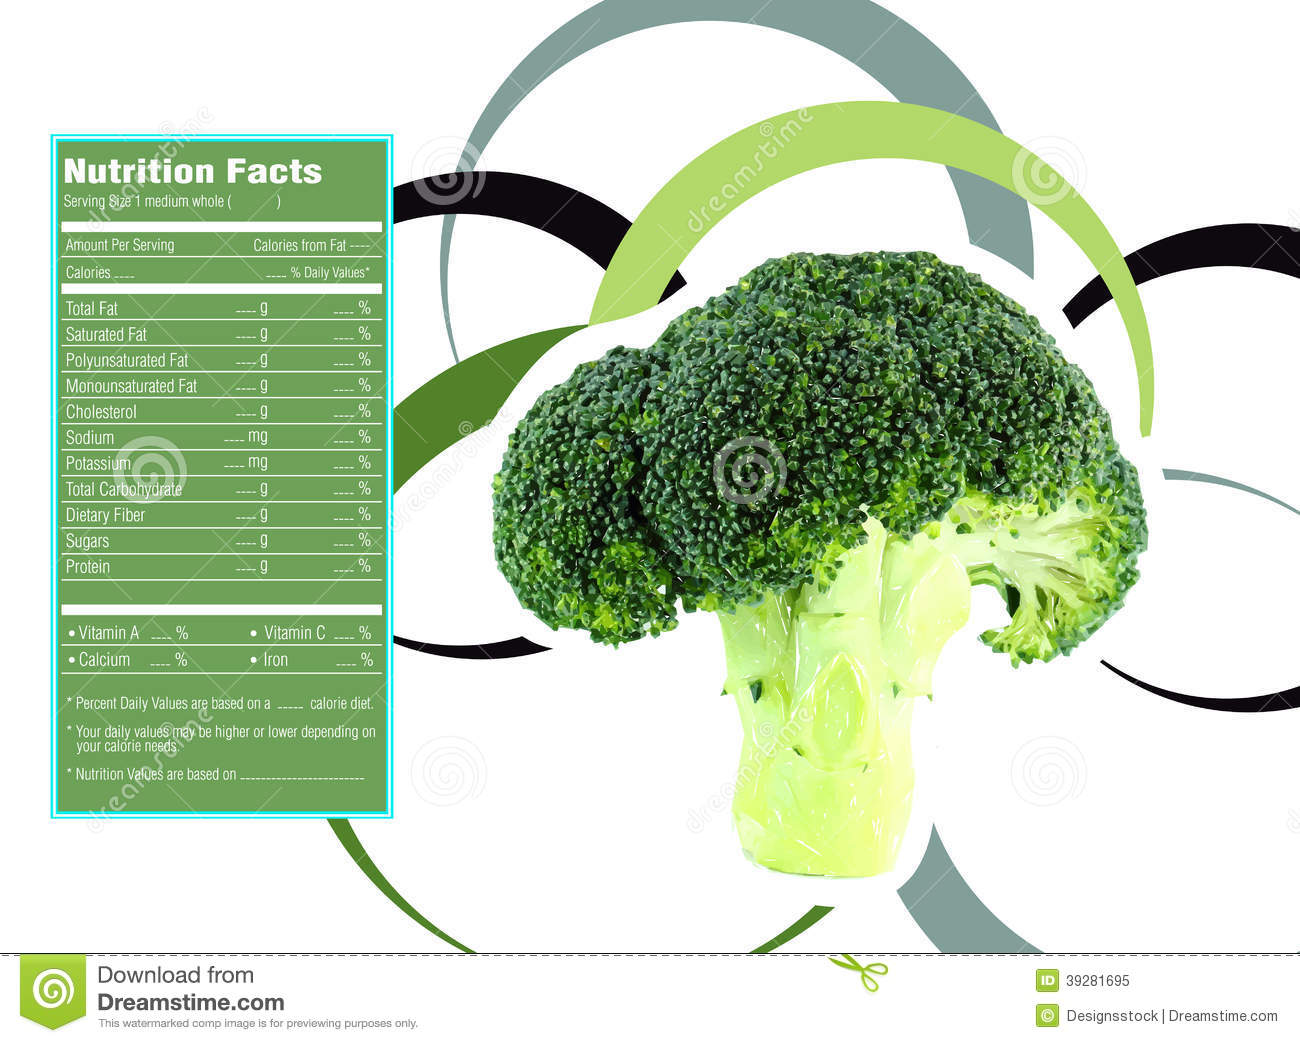 cauliflower nutrition facts stock vector - illustration of abstract